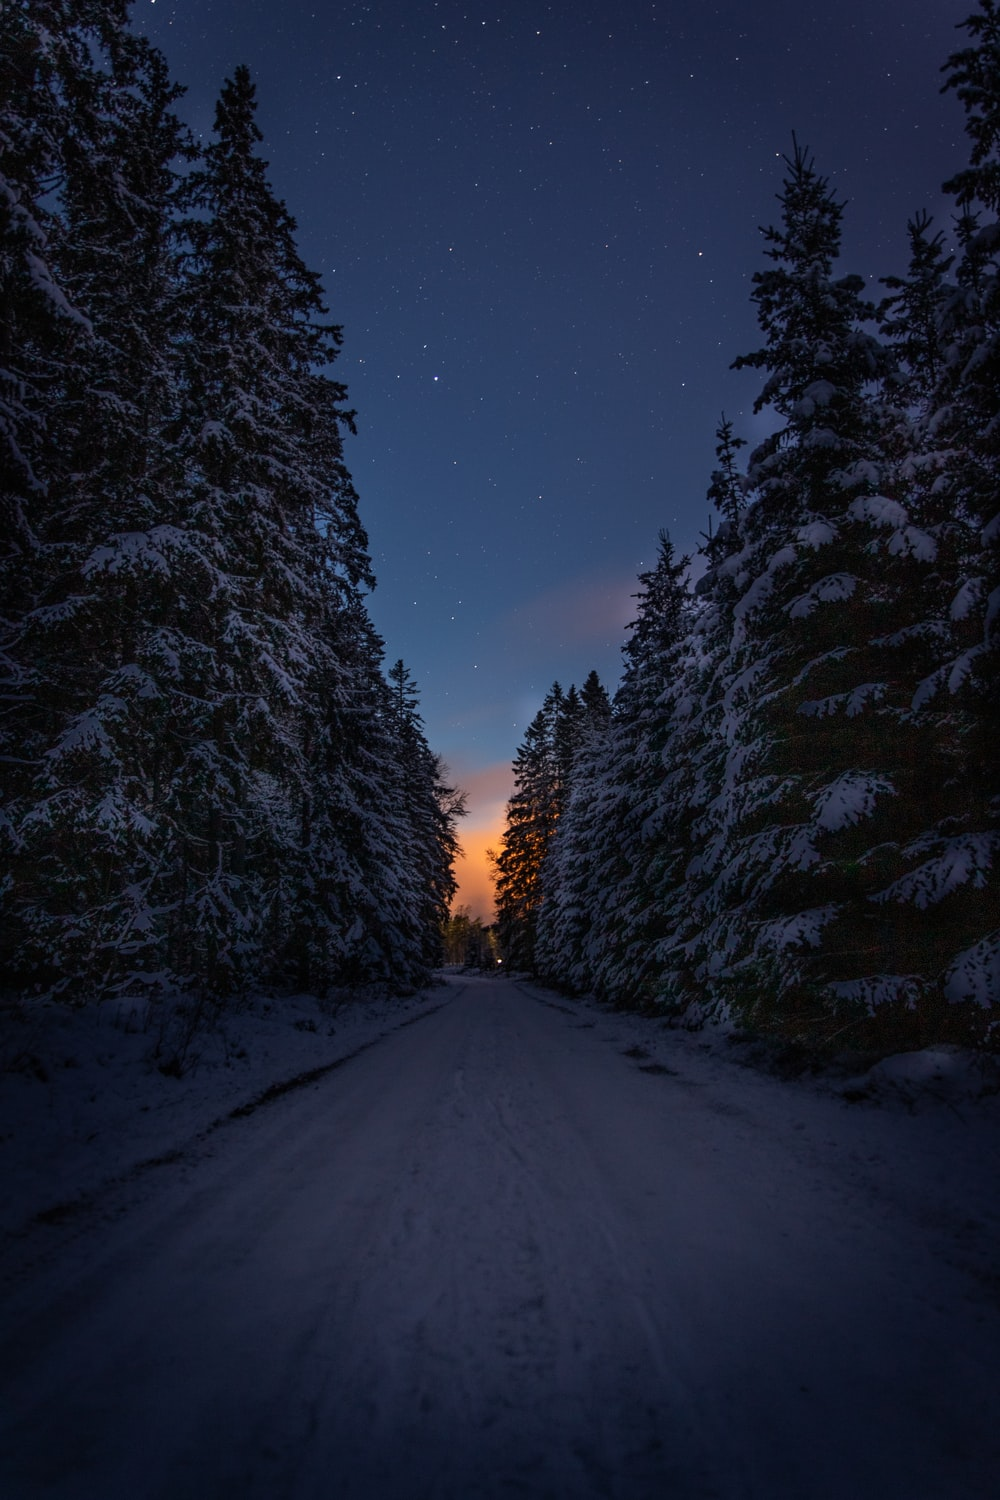 snow covered road between trees during night time